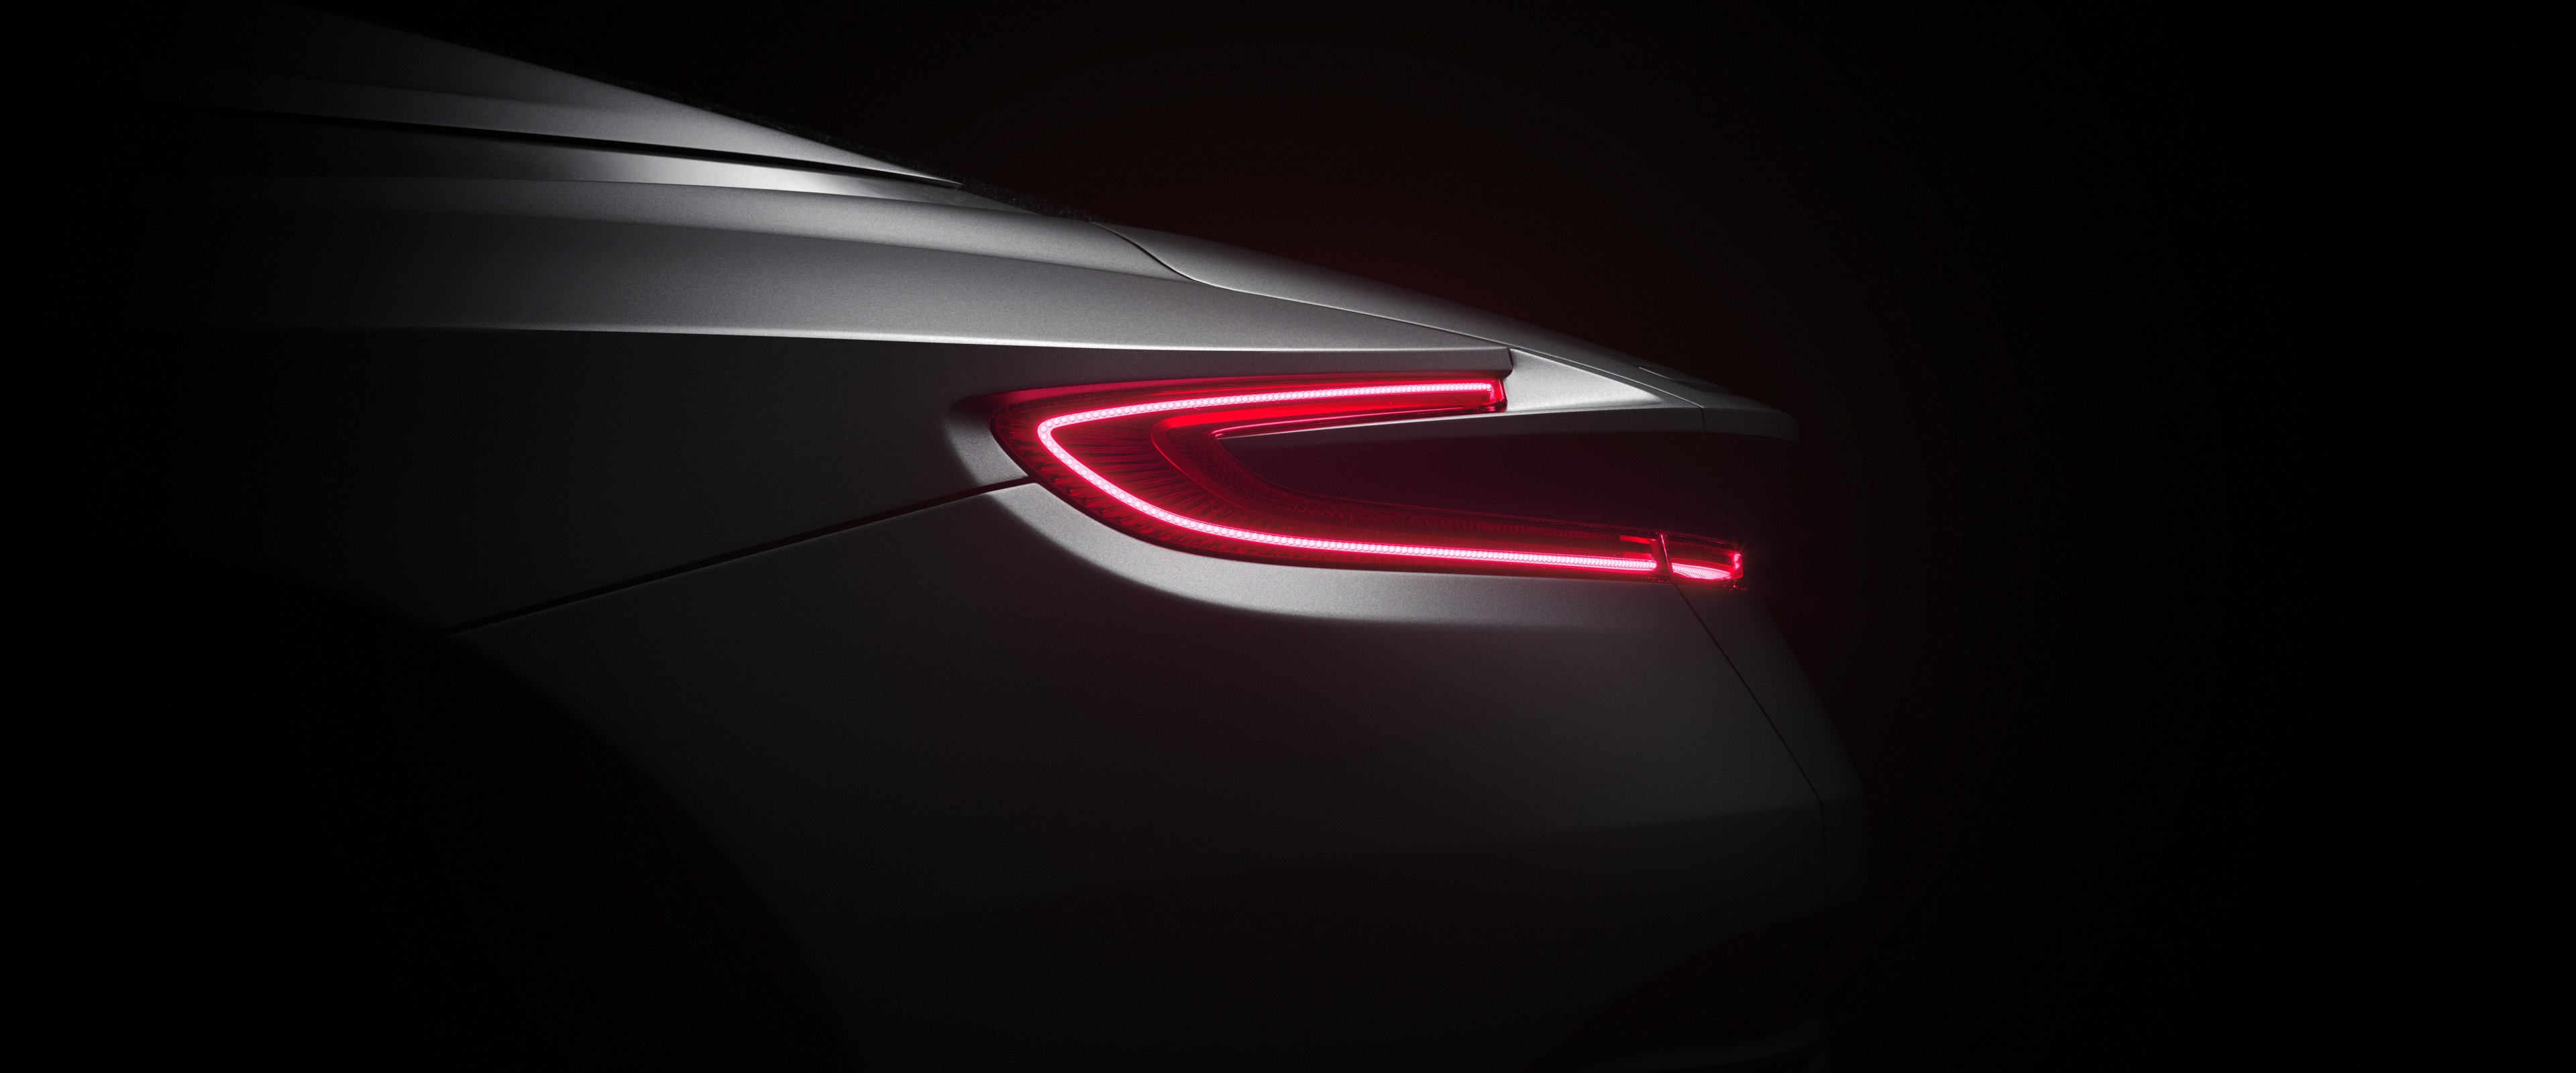 Aston Martin Db11 2017 Tail Lights Inlifethrill Designs